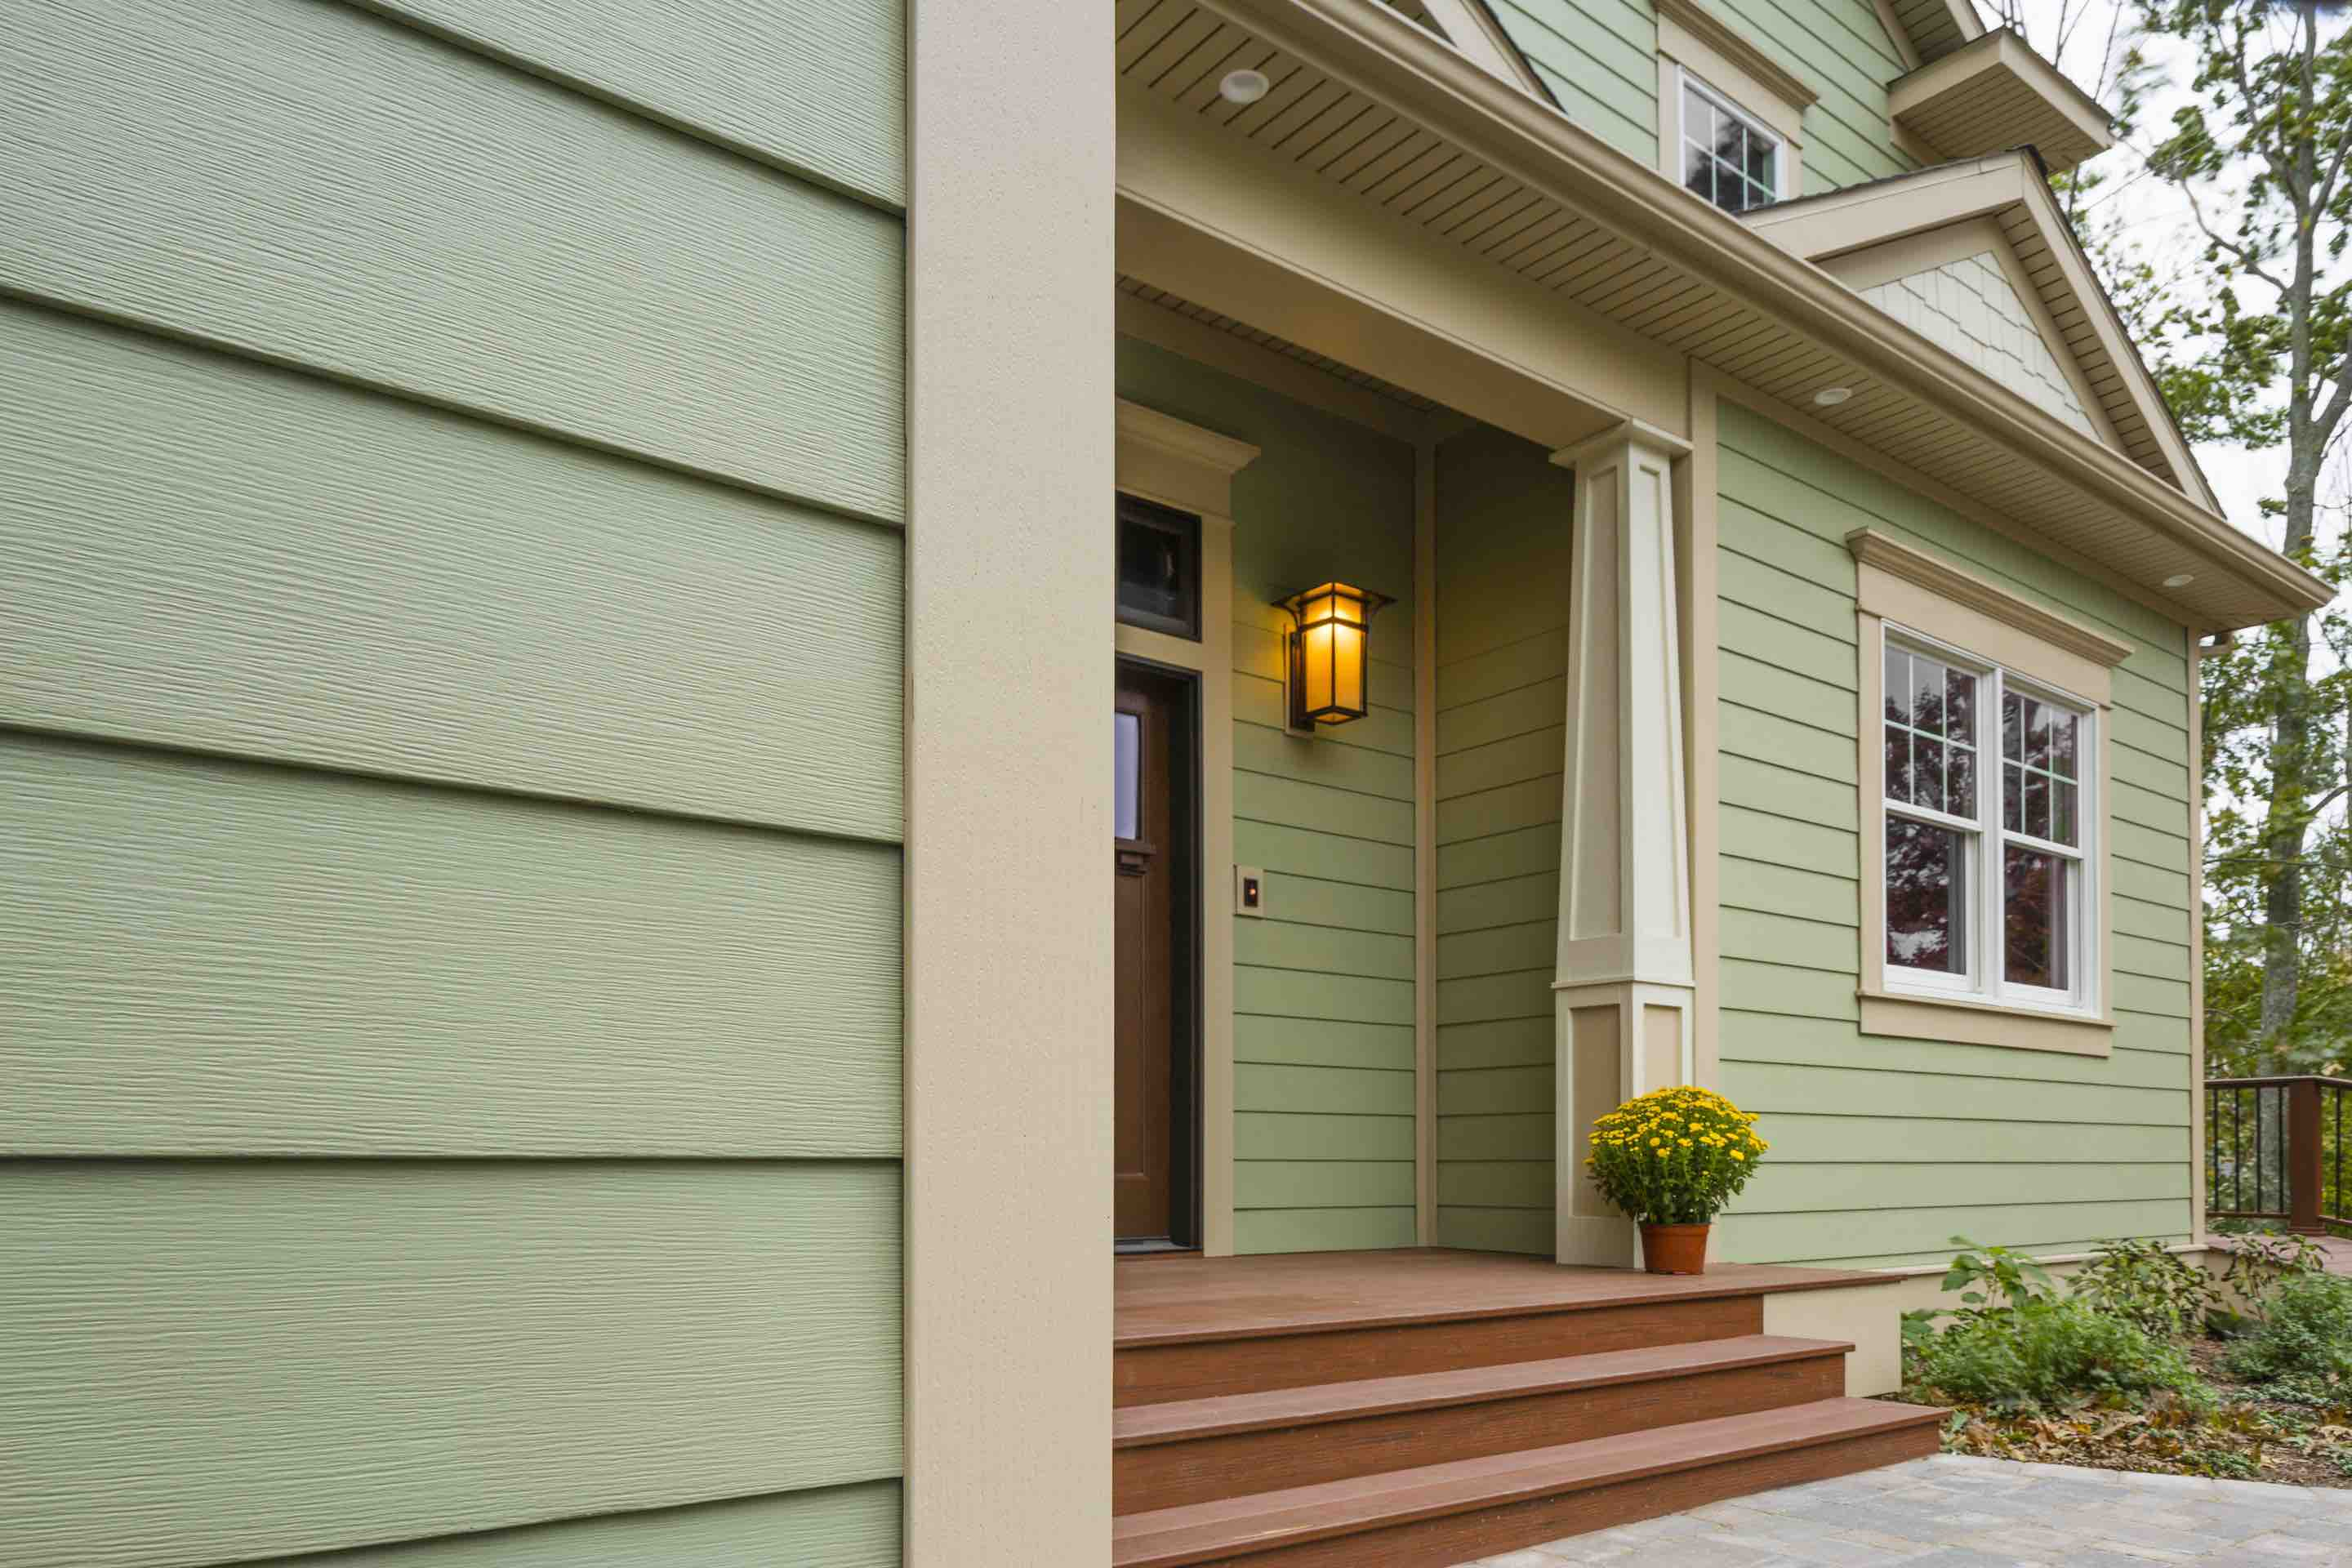 Siding Combines Durability And Authenticity Builder Magazine Products Siding Composite Materials Materials New Products 2017 Product